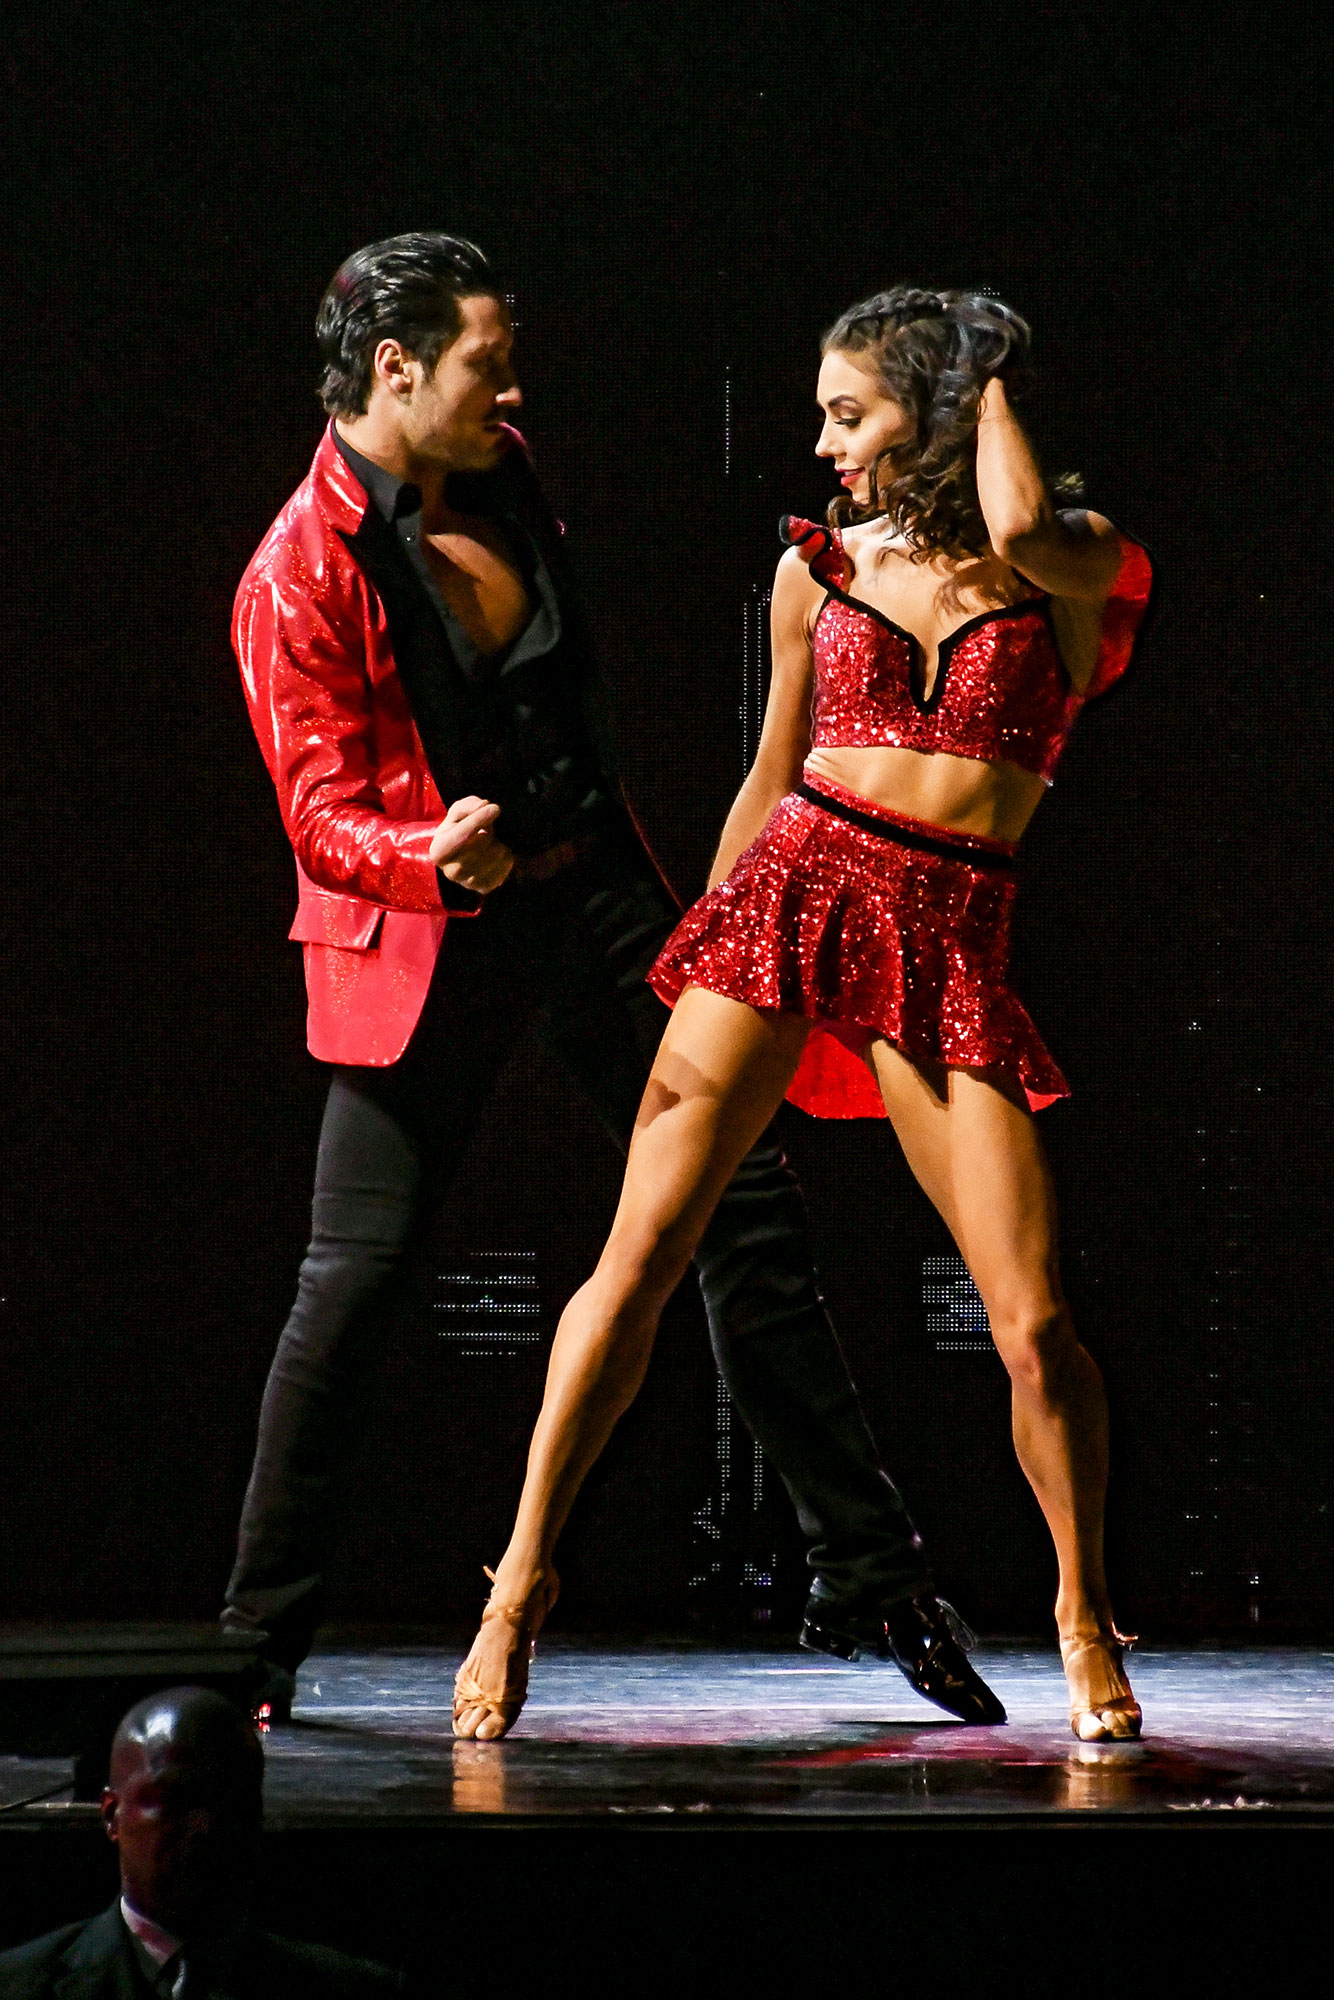 Who is val from dancing with the stars hookup 2019